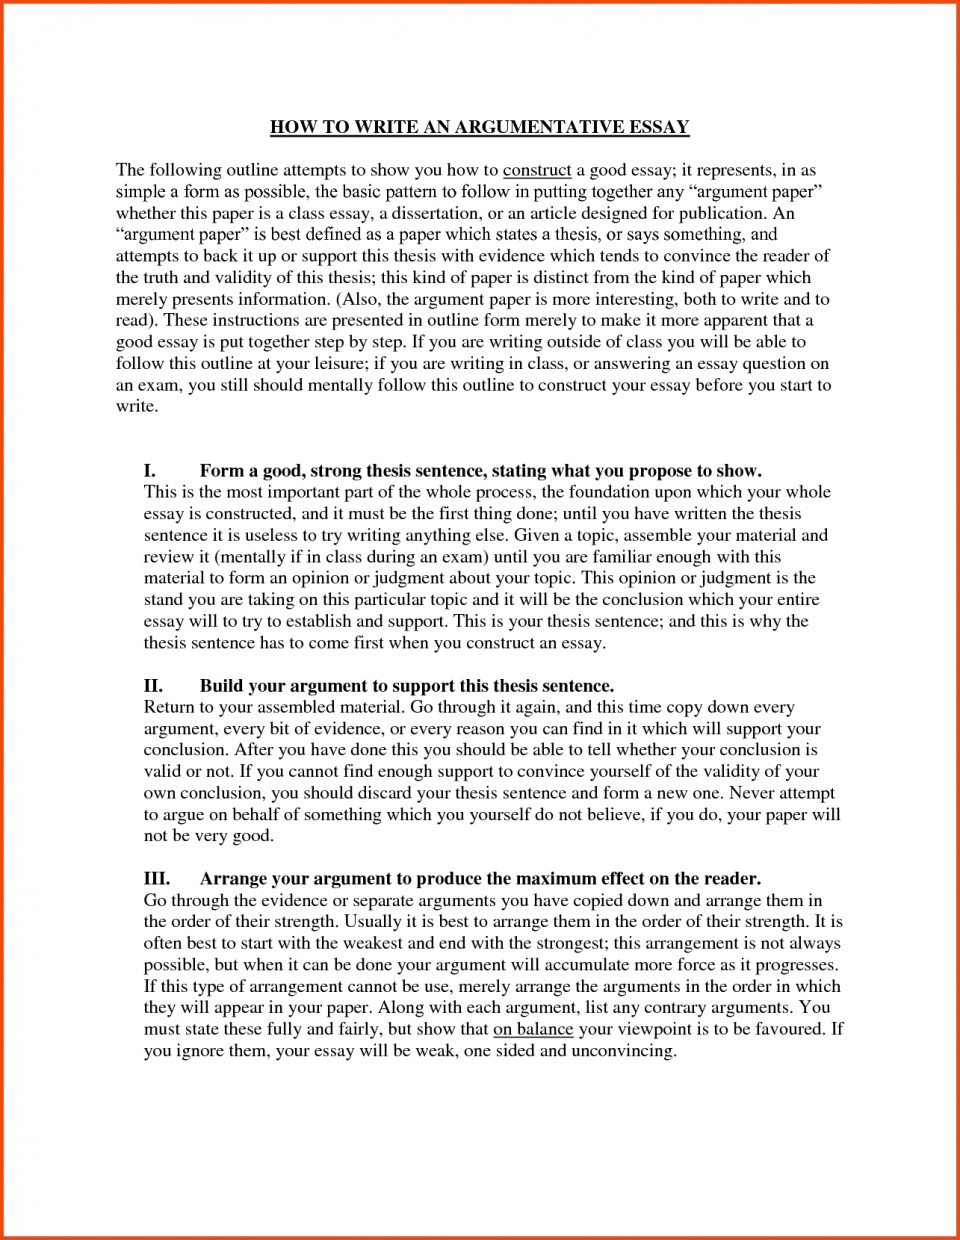 005 Essay Example How To Start An Brilliant Ideas Of Good Ways About Yourself Dissertation Nice Amazing Write A Paper On Climate Change Expository Examples With Quote Format 960